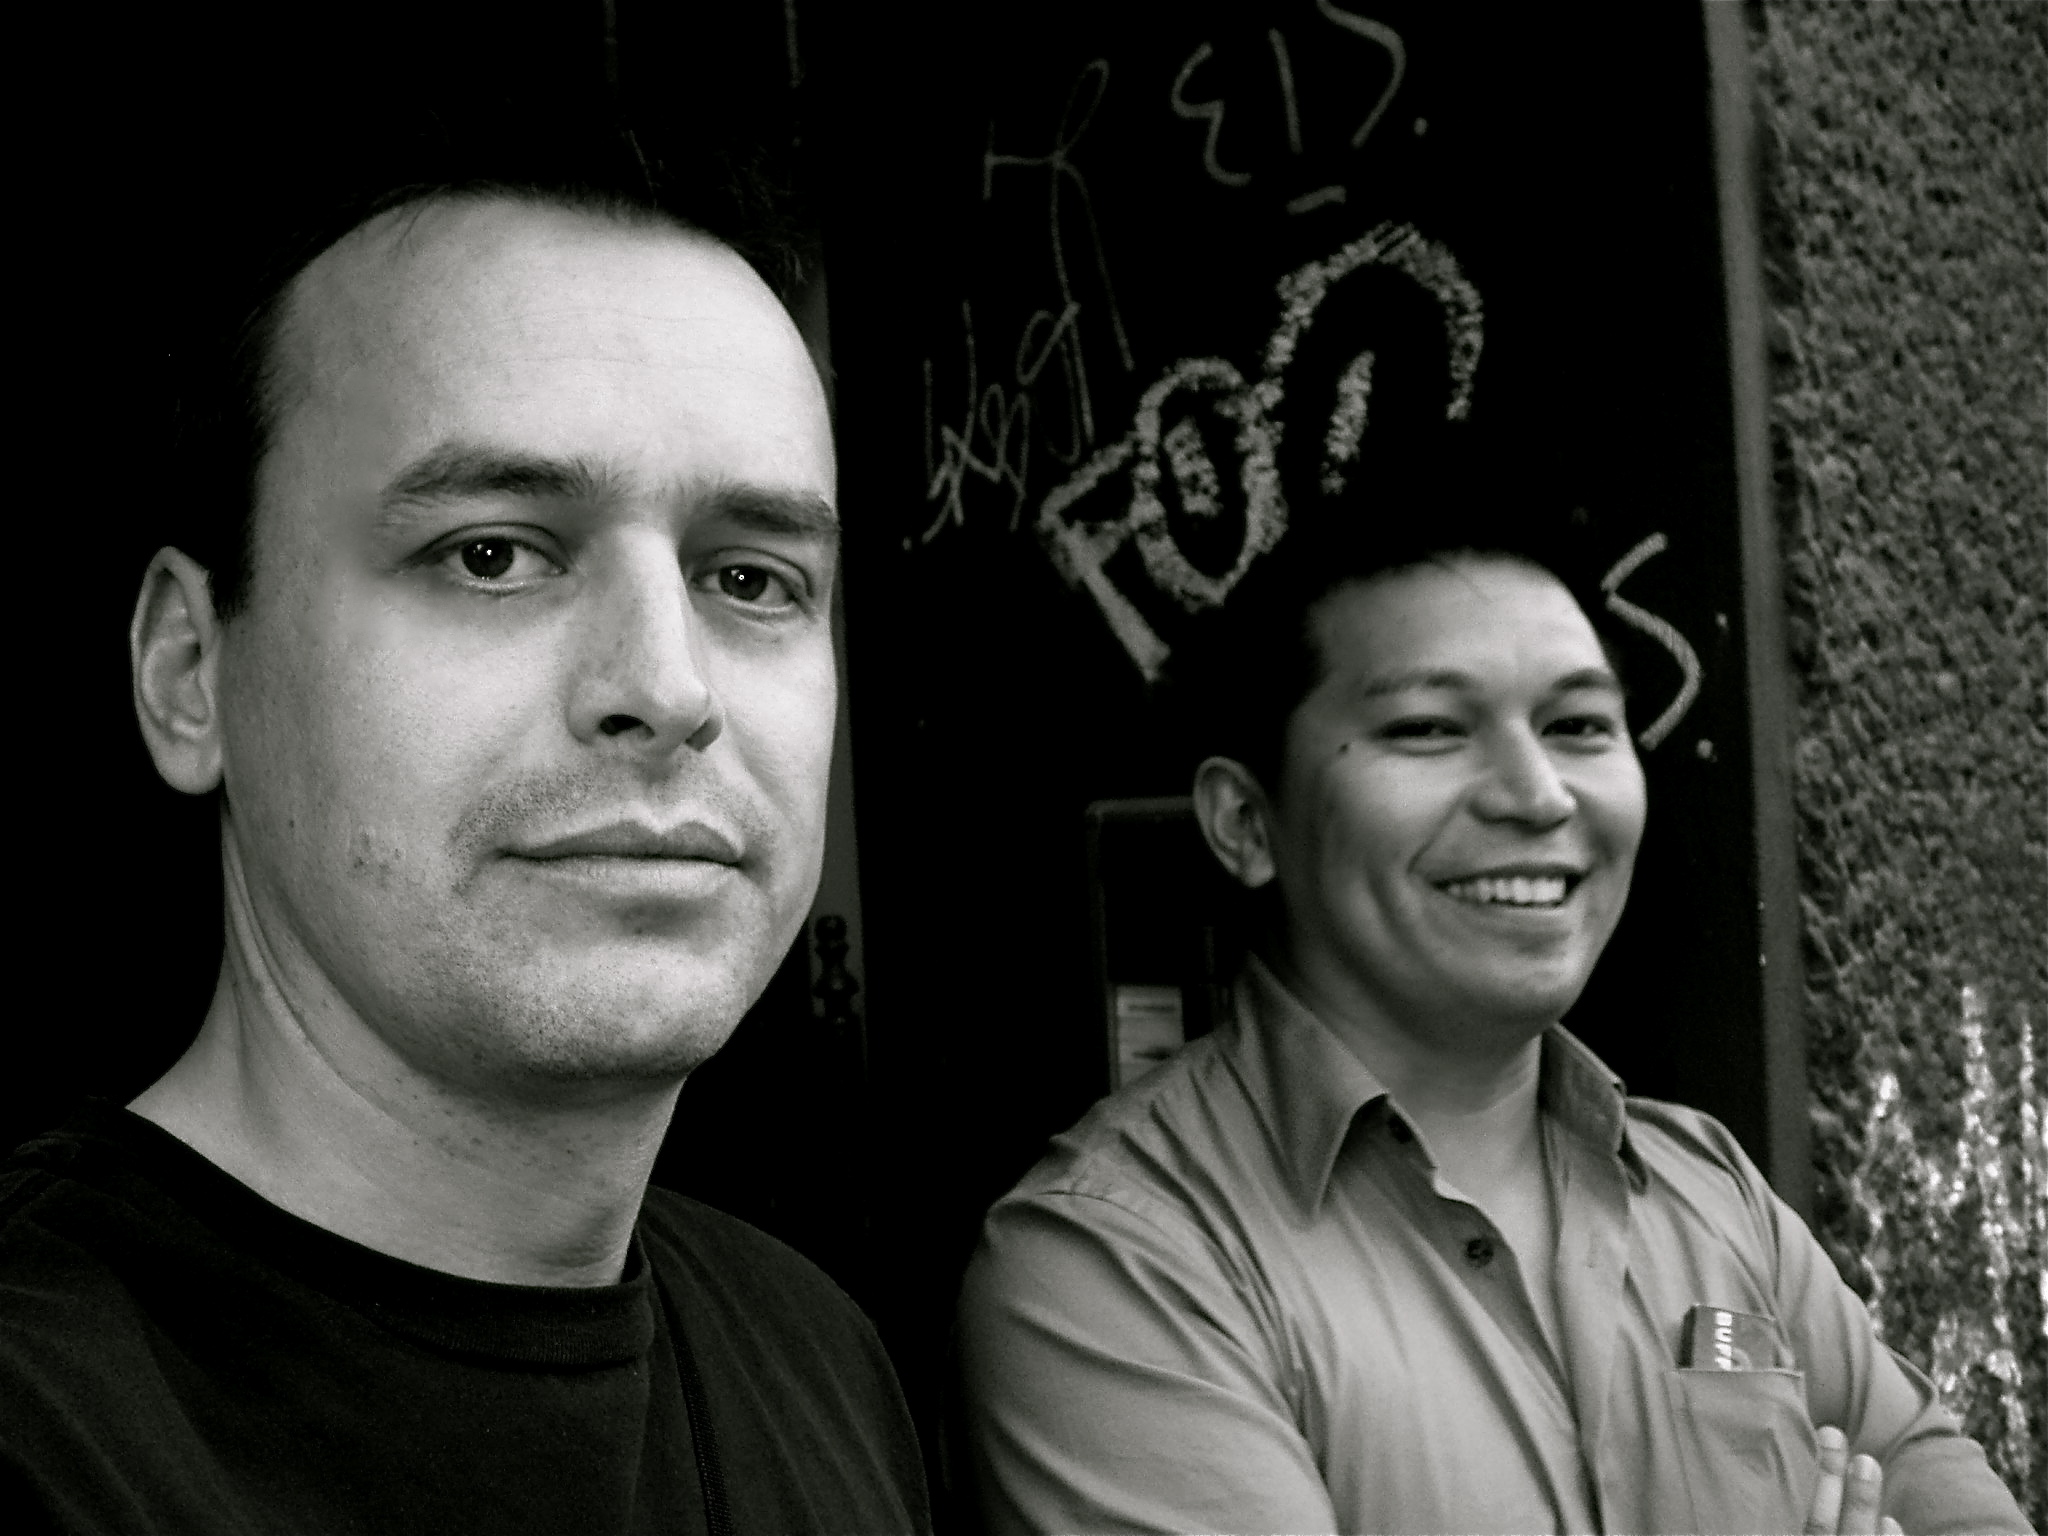 Mike James and I in Berlin / Popkomm 2007